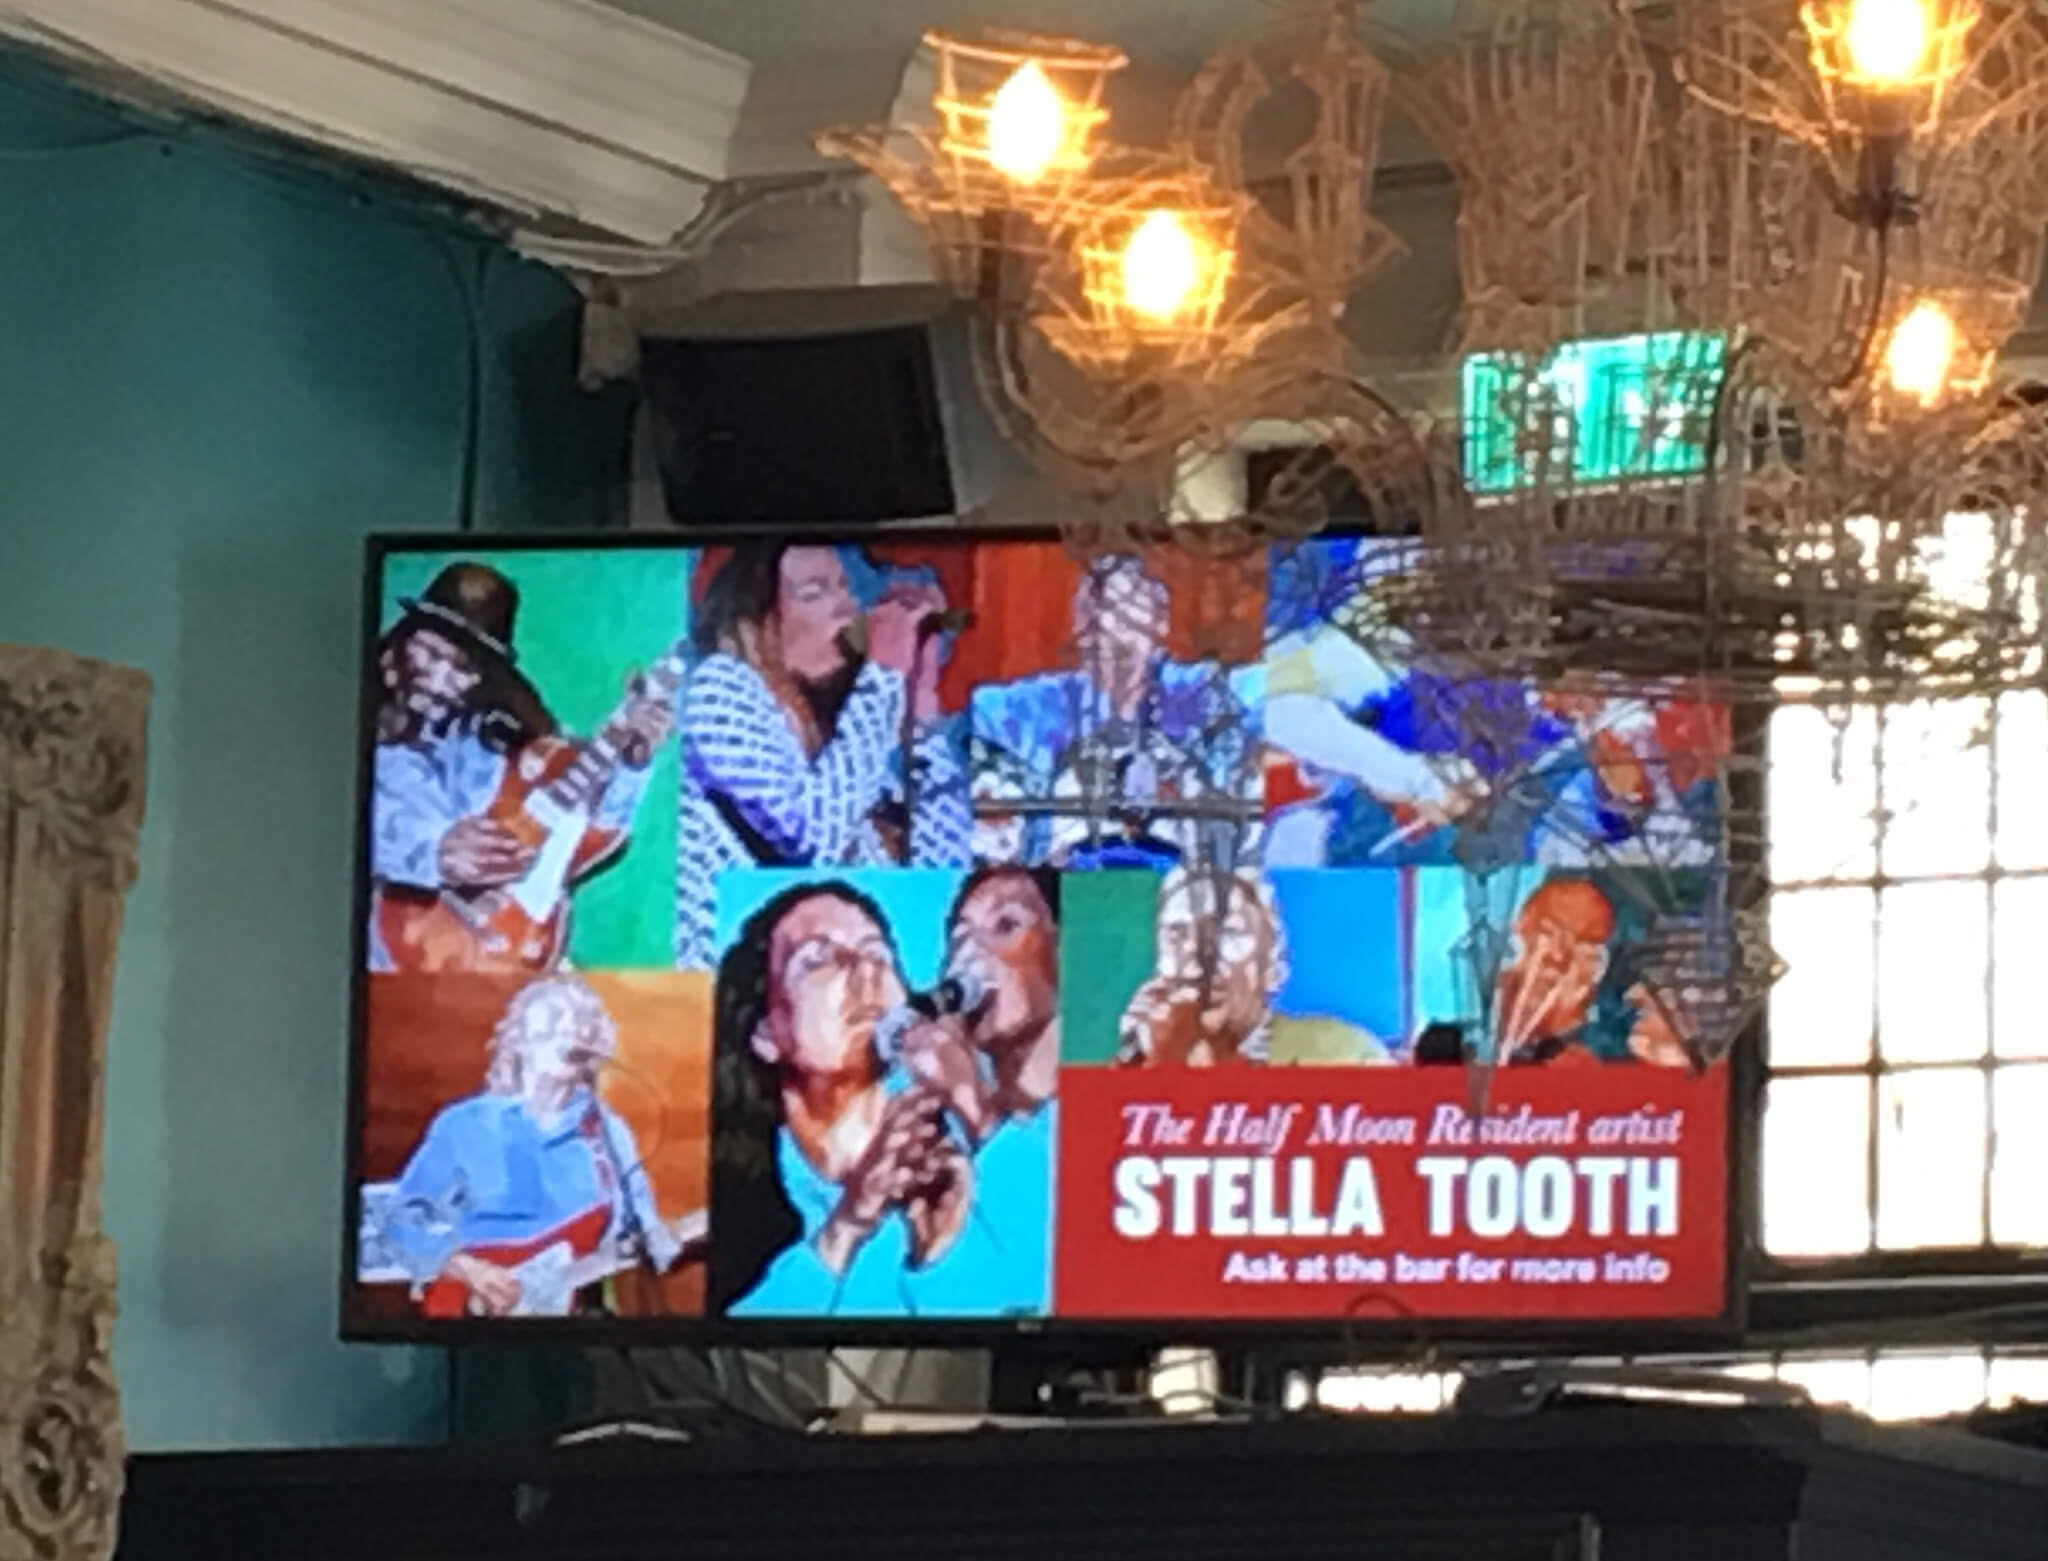 Big screen in Half Moon Putney with news of Stella Tooth as resident artist.